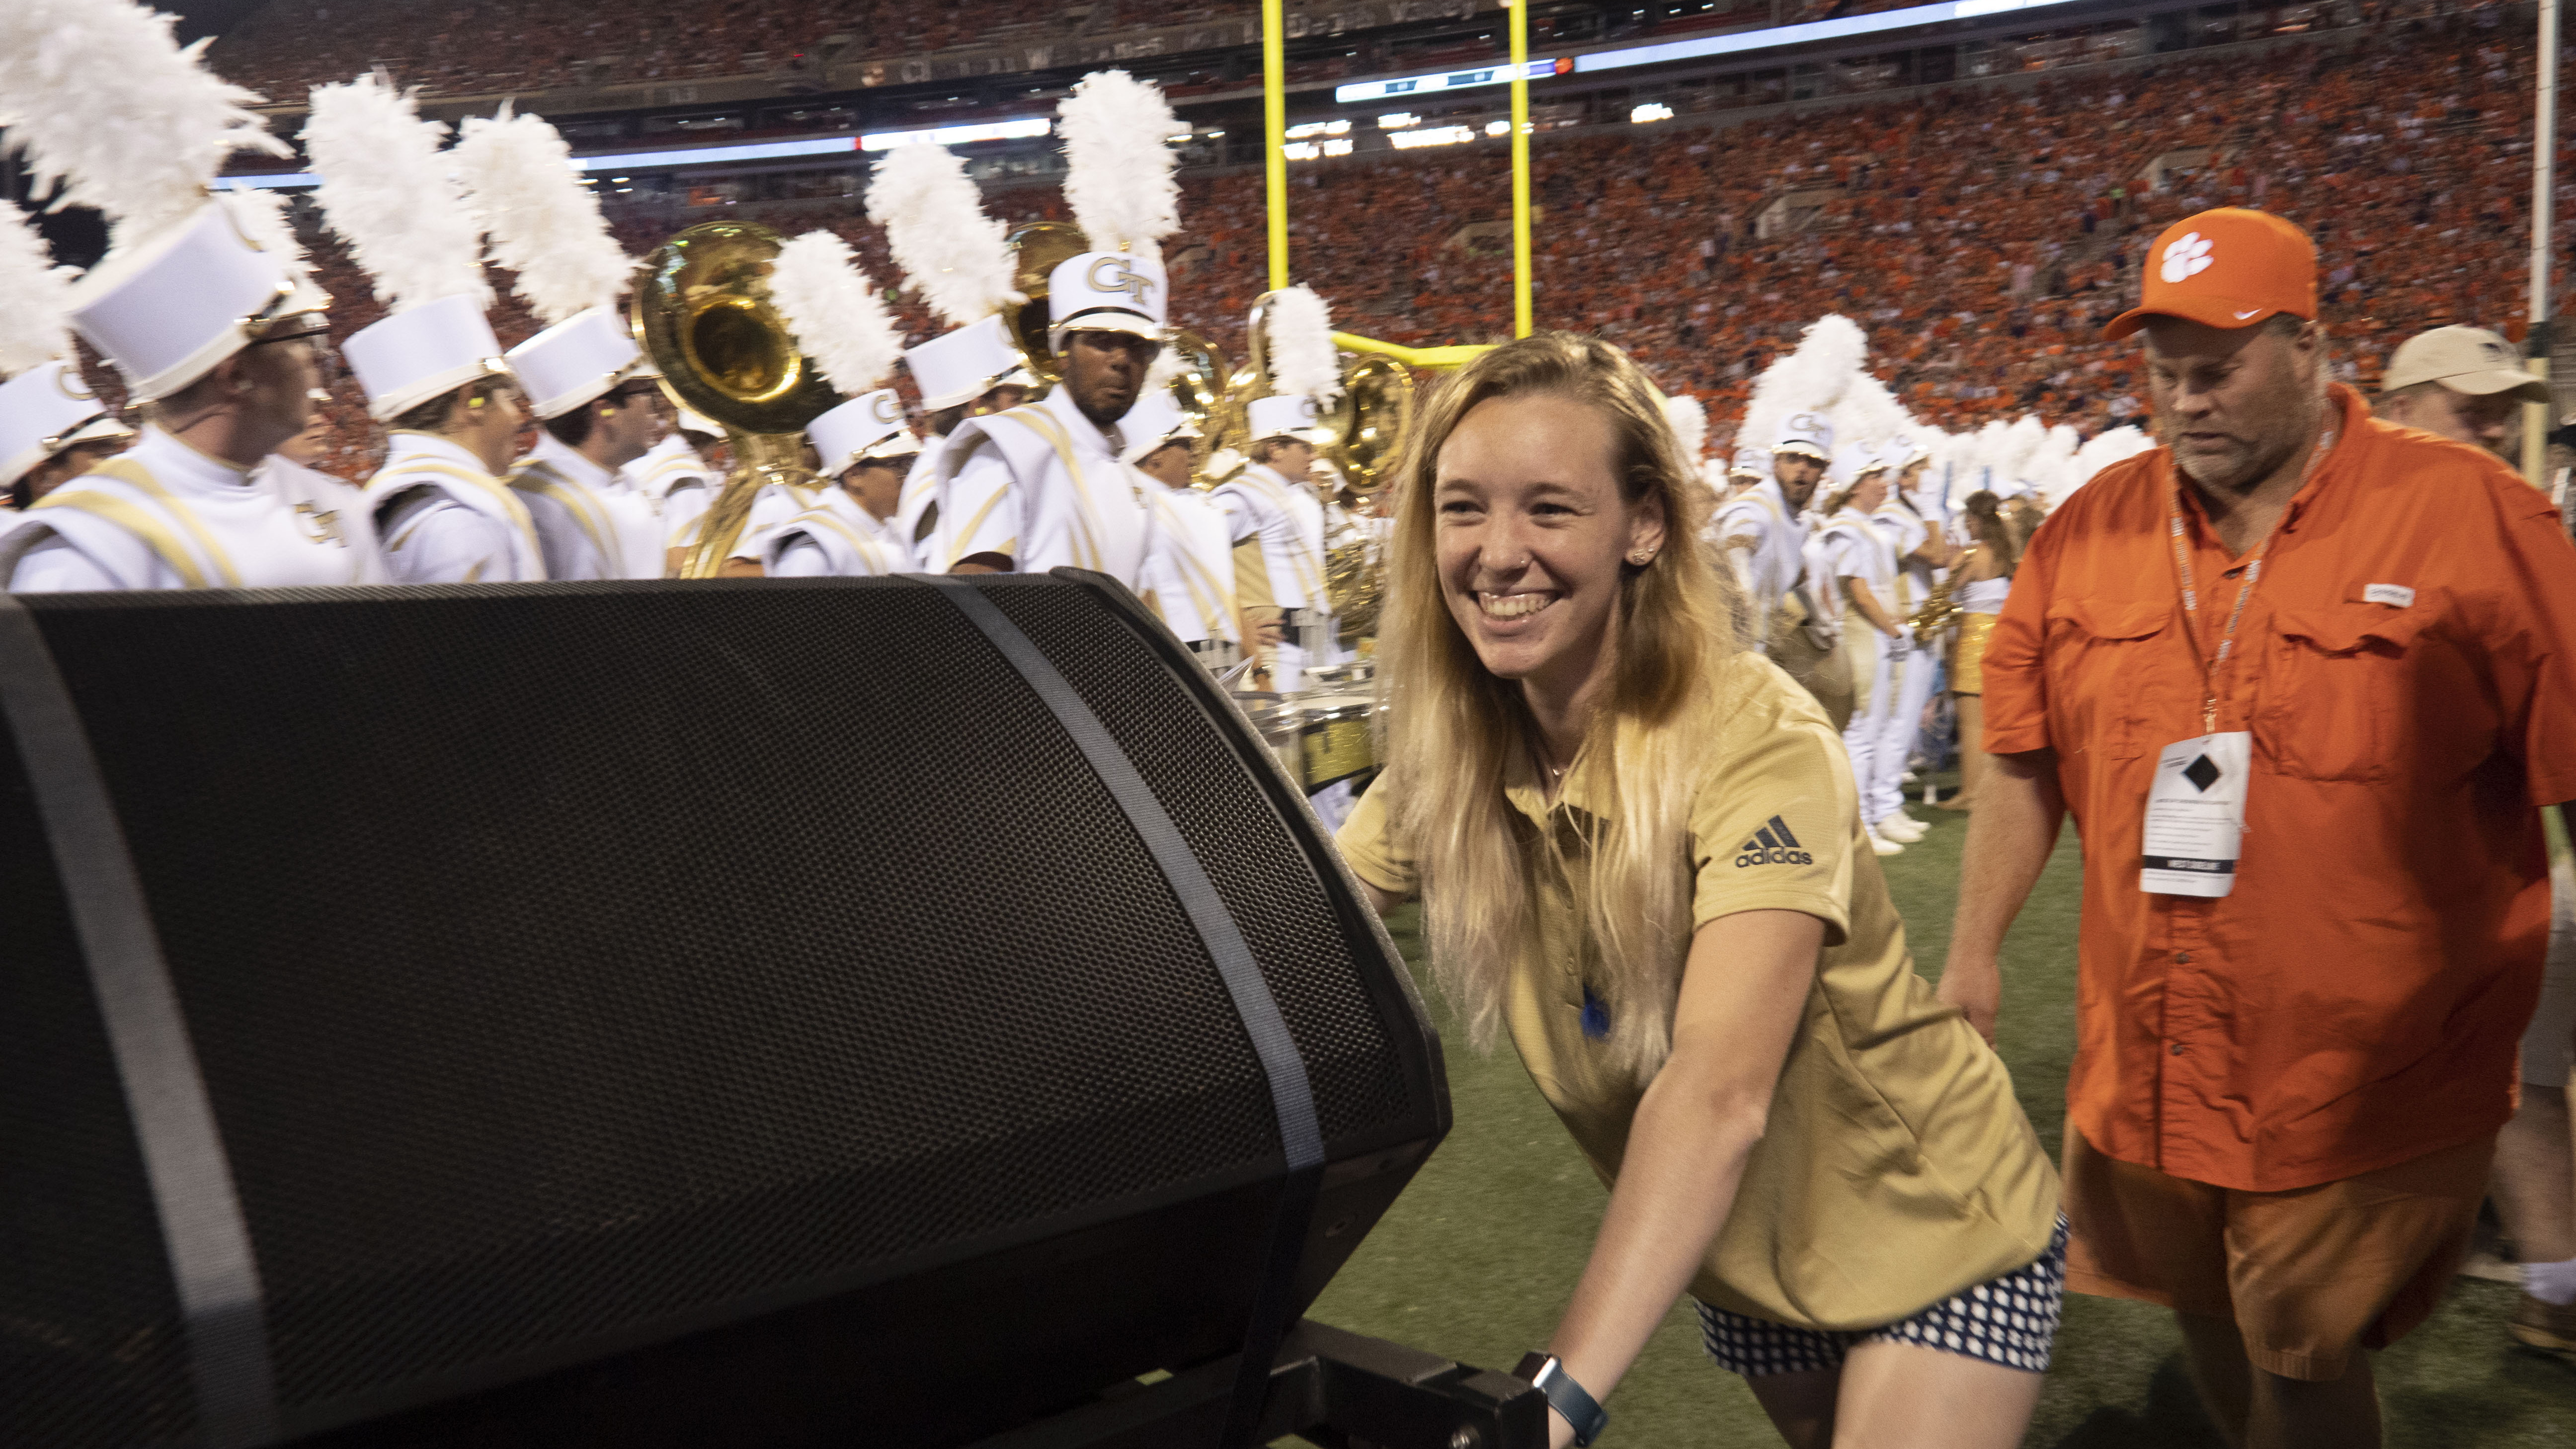 A staff assistant pushes a speaker off the field while the band sets up.